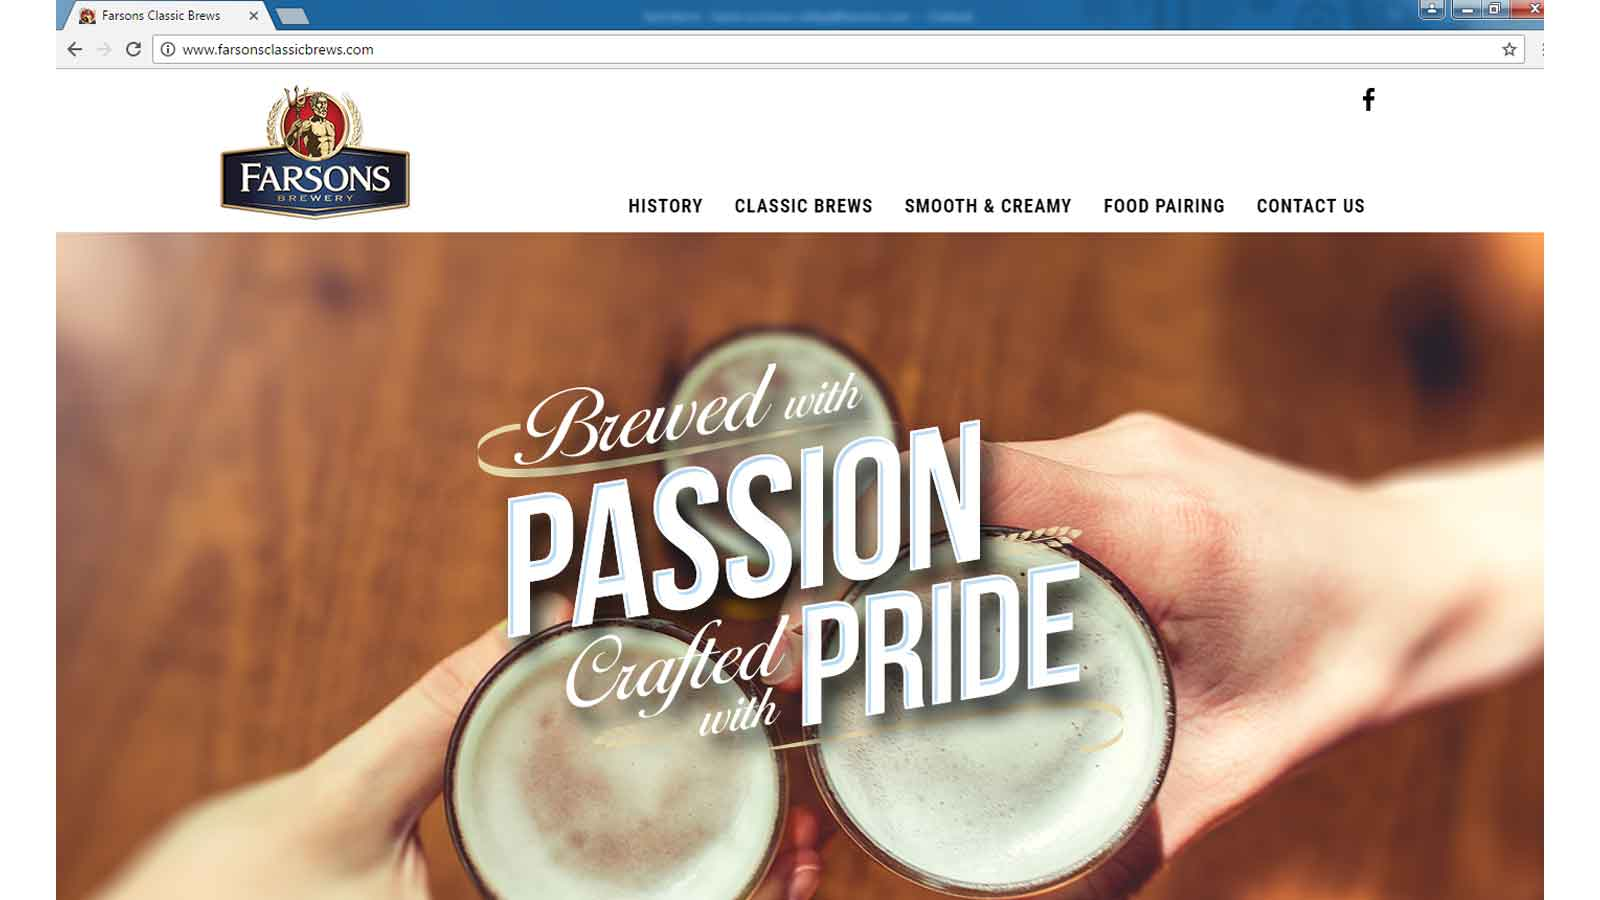 New website for Farsons Classic Brews